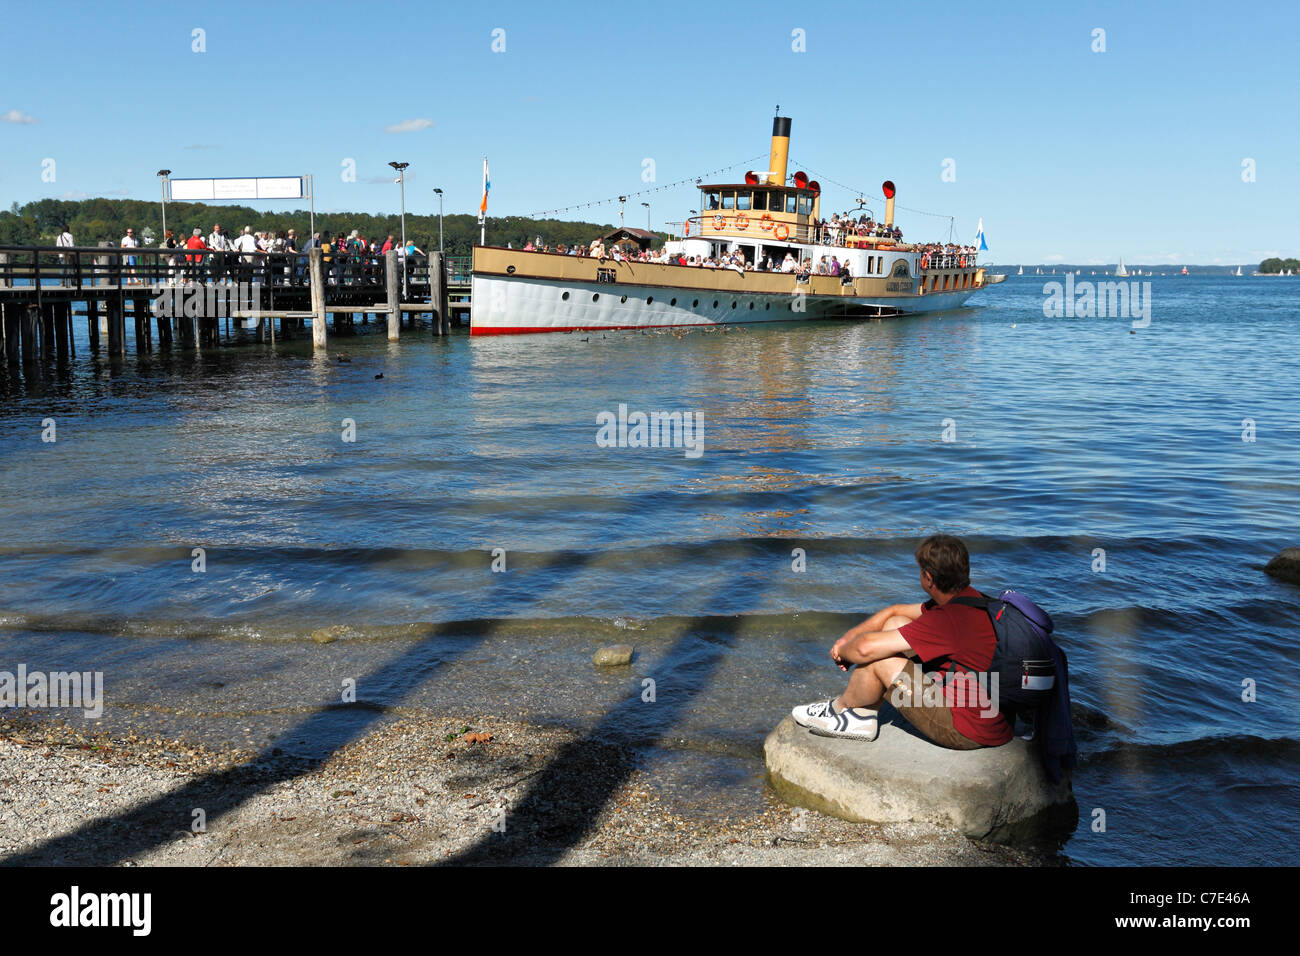 Man sitting on foreshore watching a Chiemsee Ferry Boat at the Herreninsel, Chiemgau Upper Bavaria Germany Stock Photo